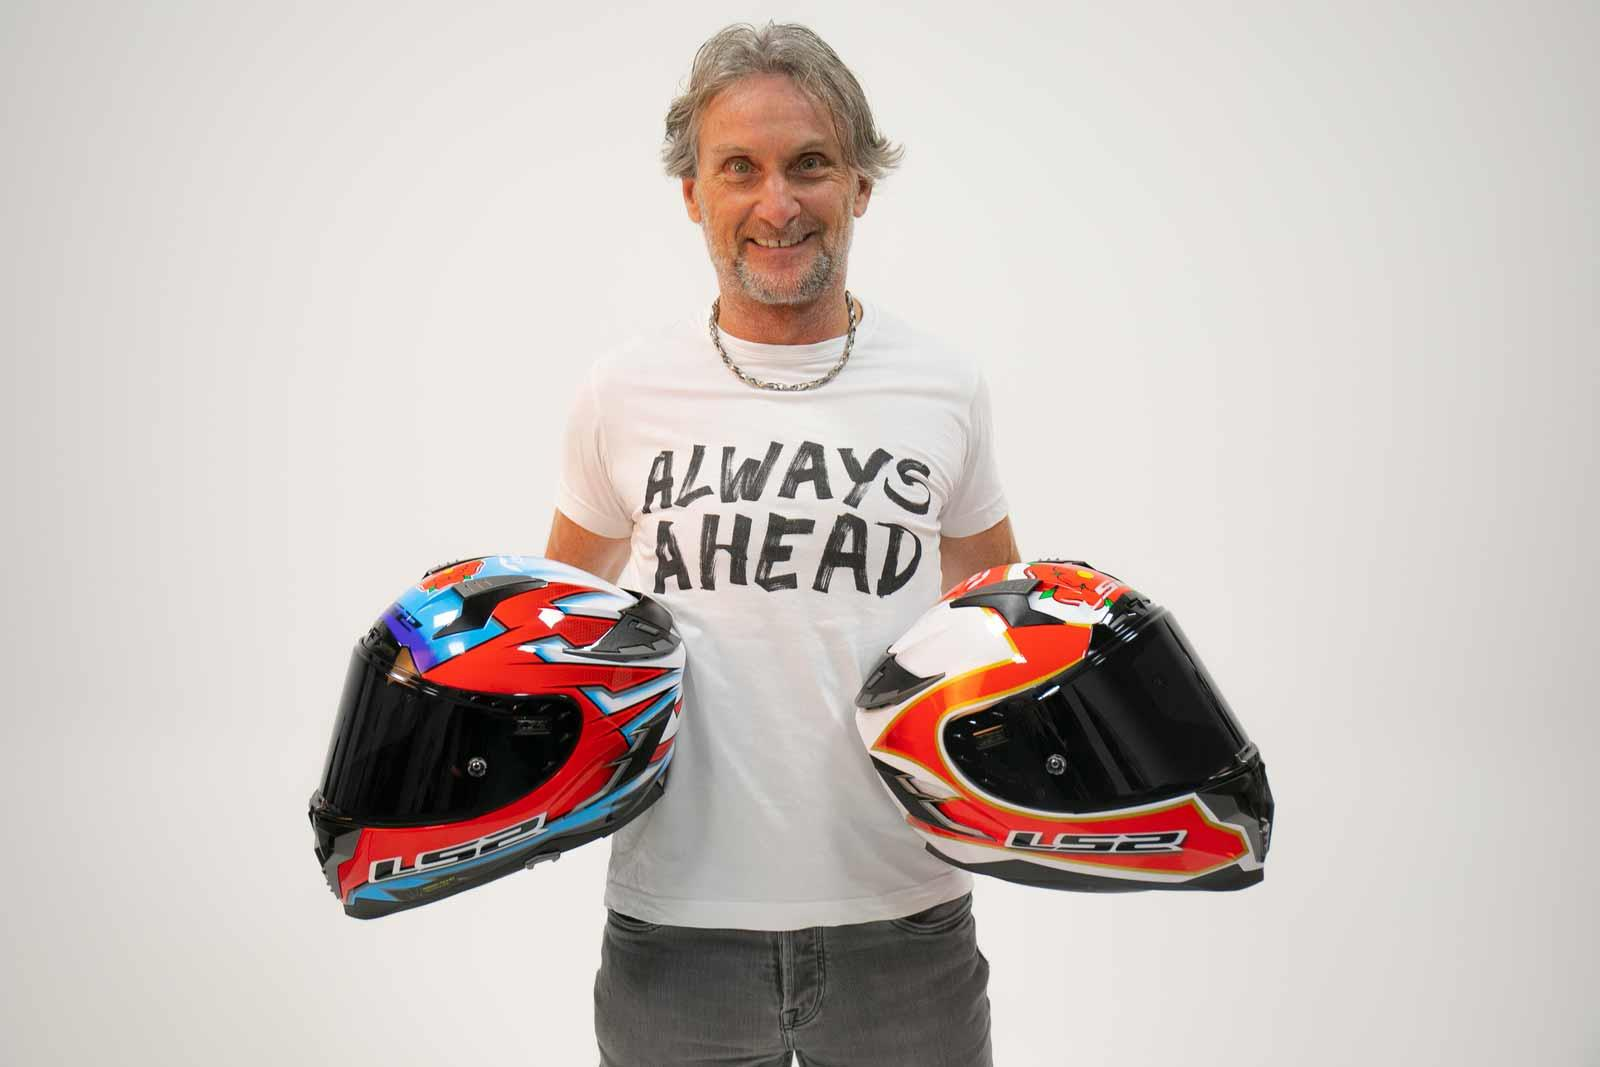 Foggy shows off both LS2 helmets